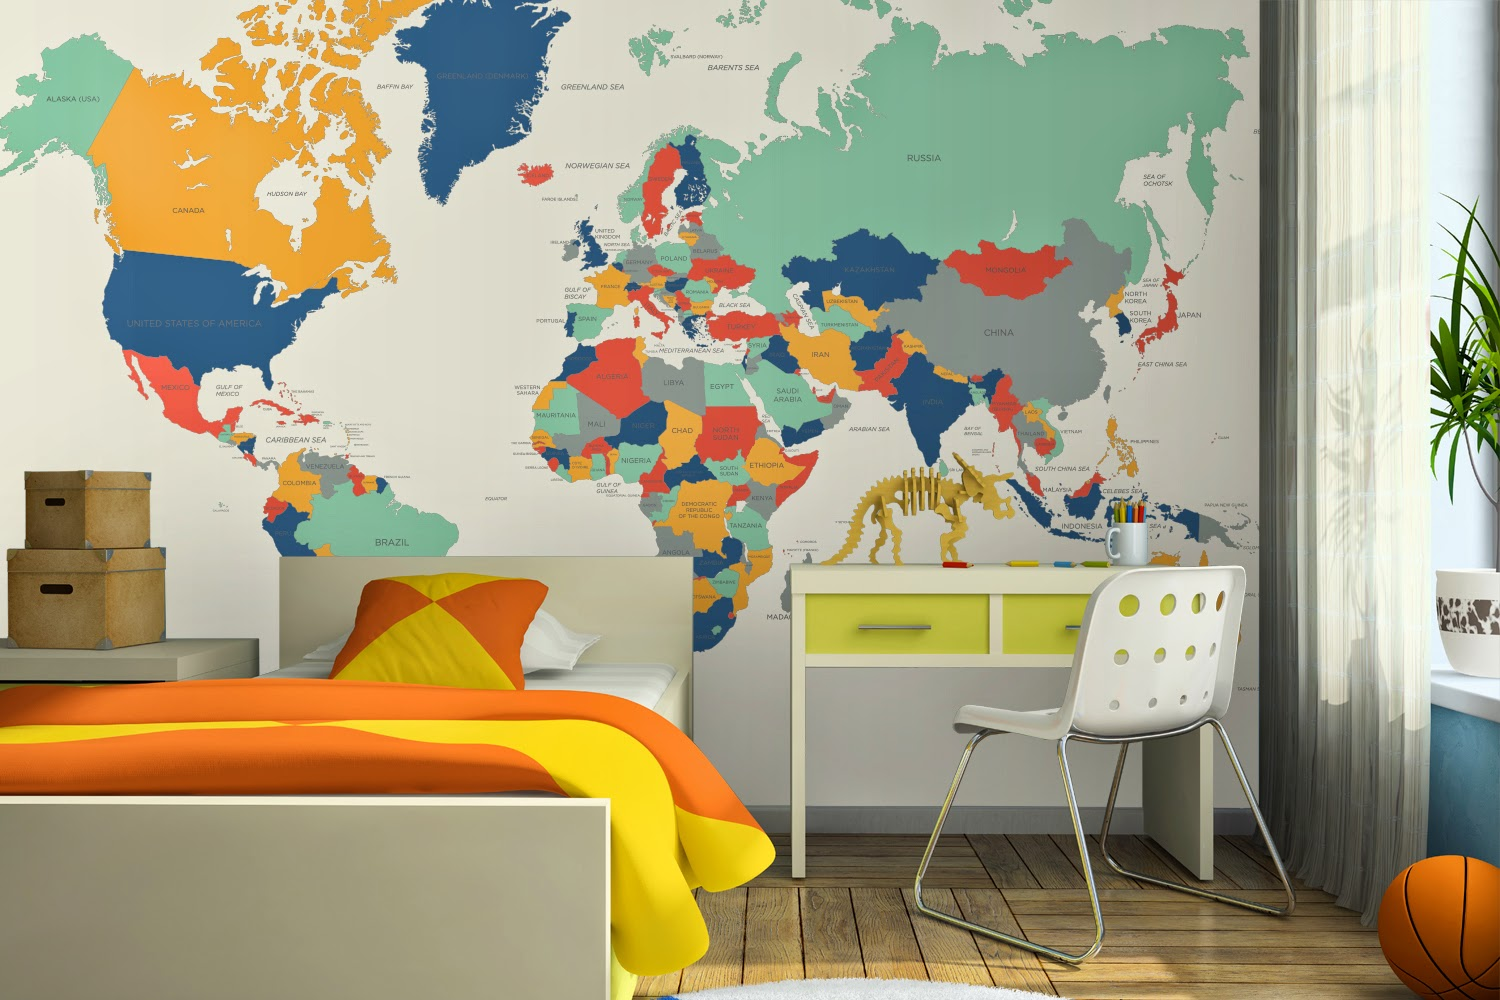 Childrens Wall Murals Wallpaper Introducing You To Murals Wallpaper Bakes Books And My Boys